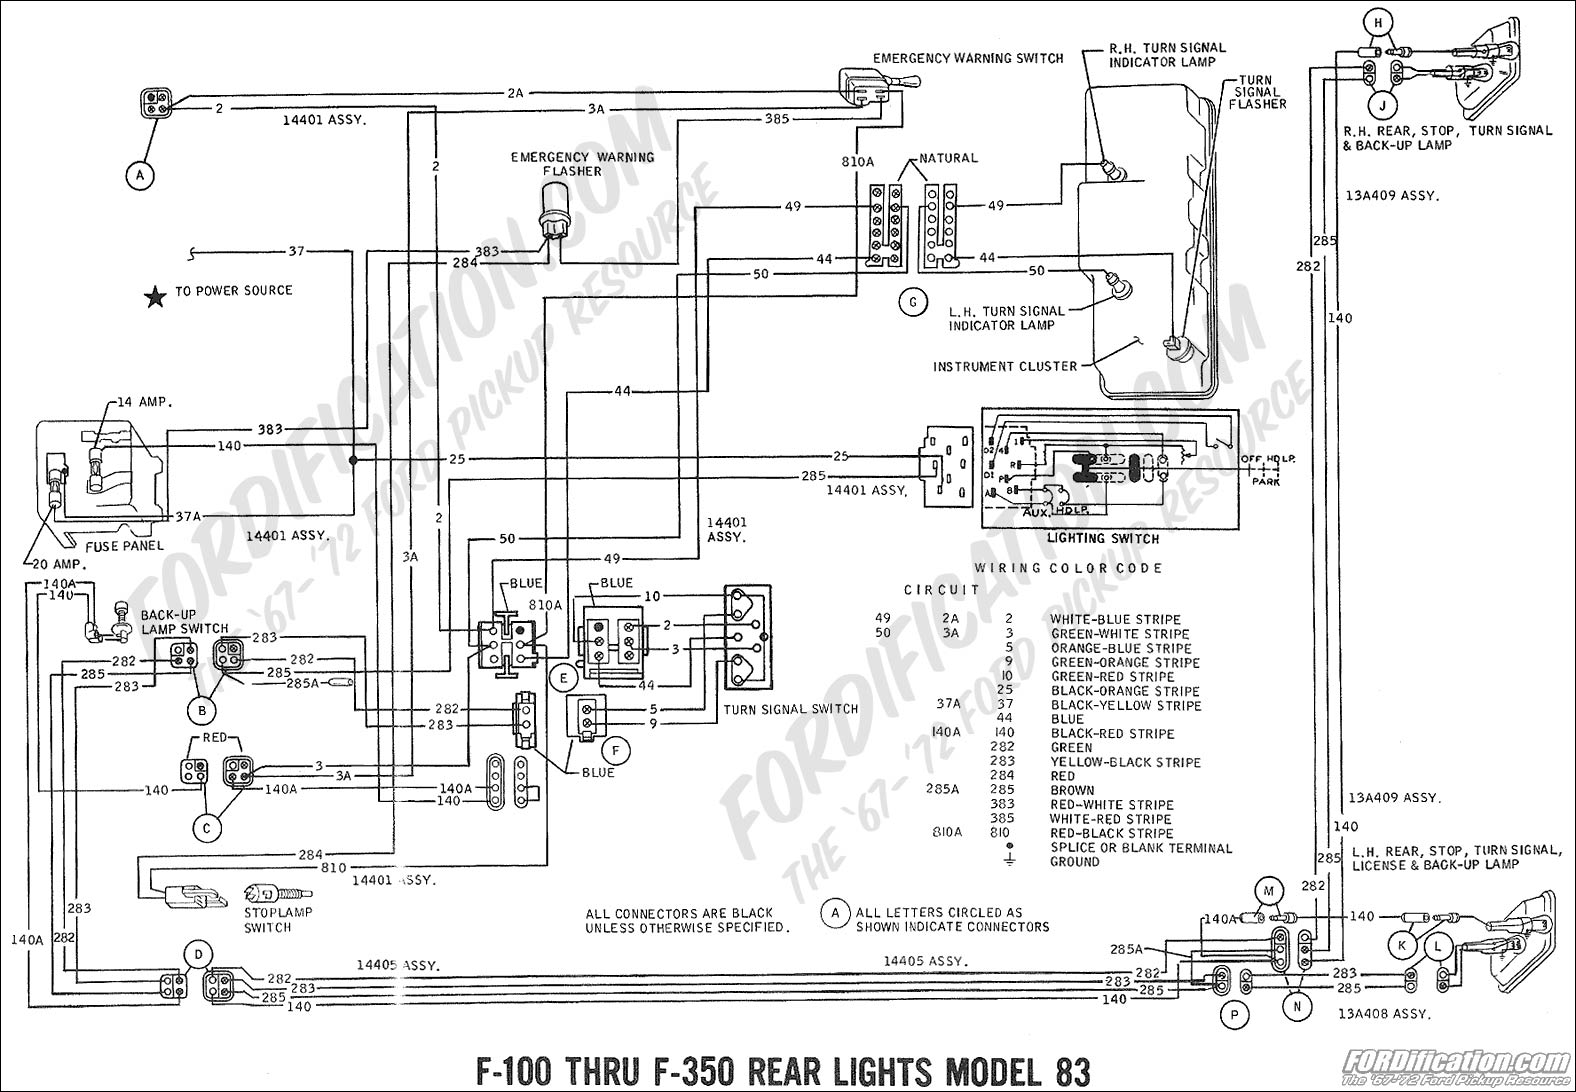 wiring_69rearlights mdl83 2 ford truck technical drawings and schematics section h wiring wiring diagram 1992 ford e150 club wagon at gsmportal.co